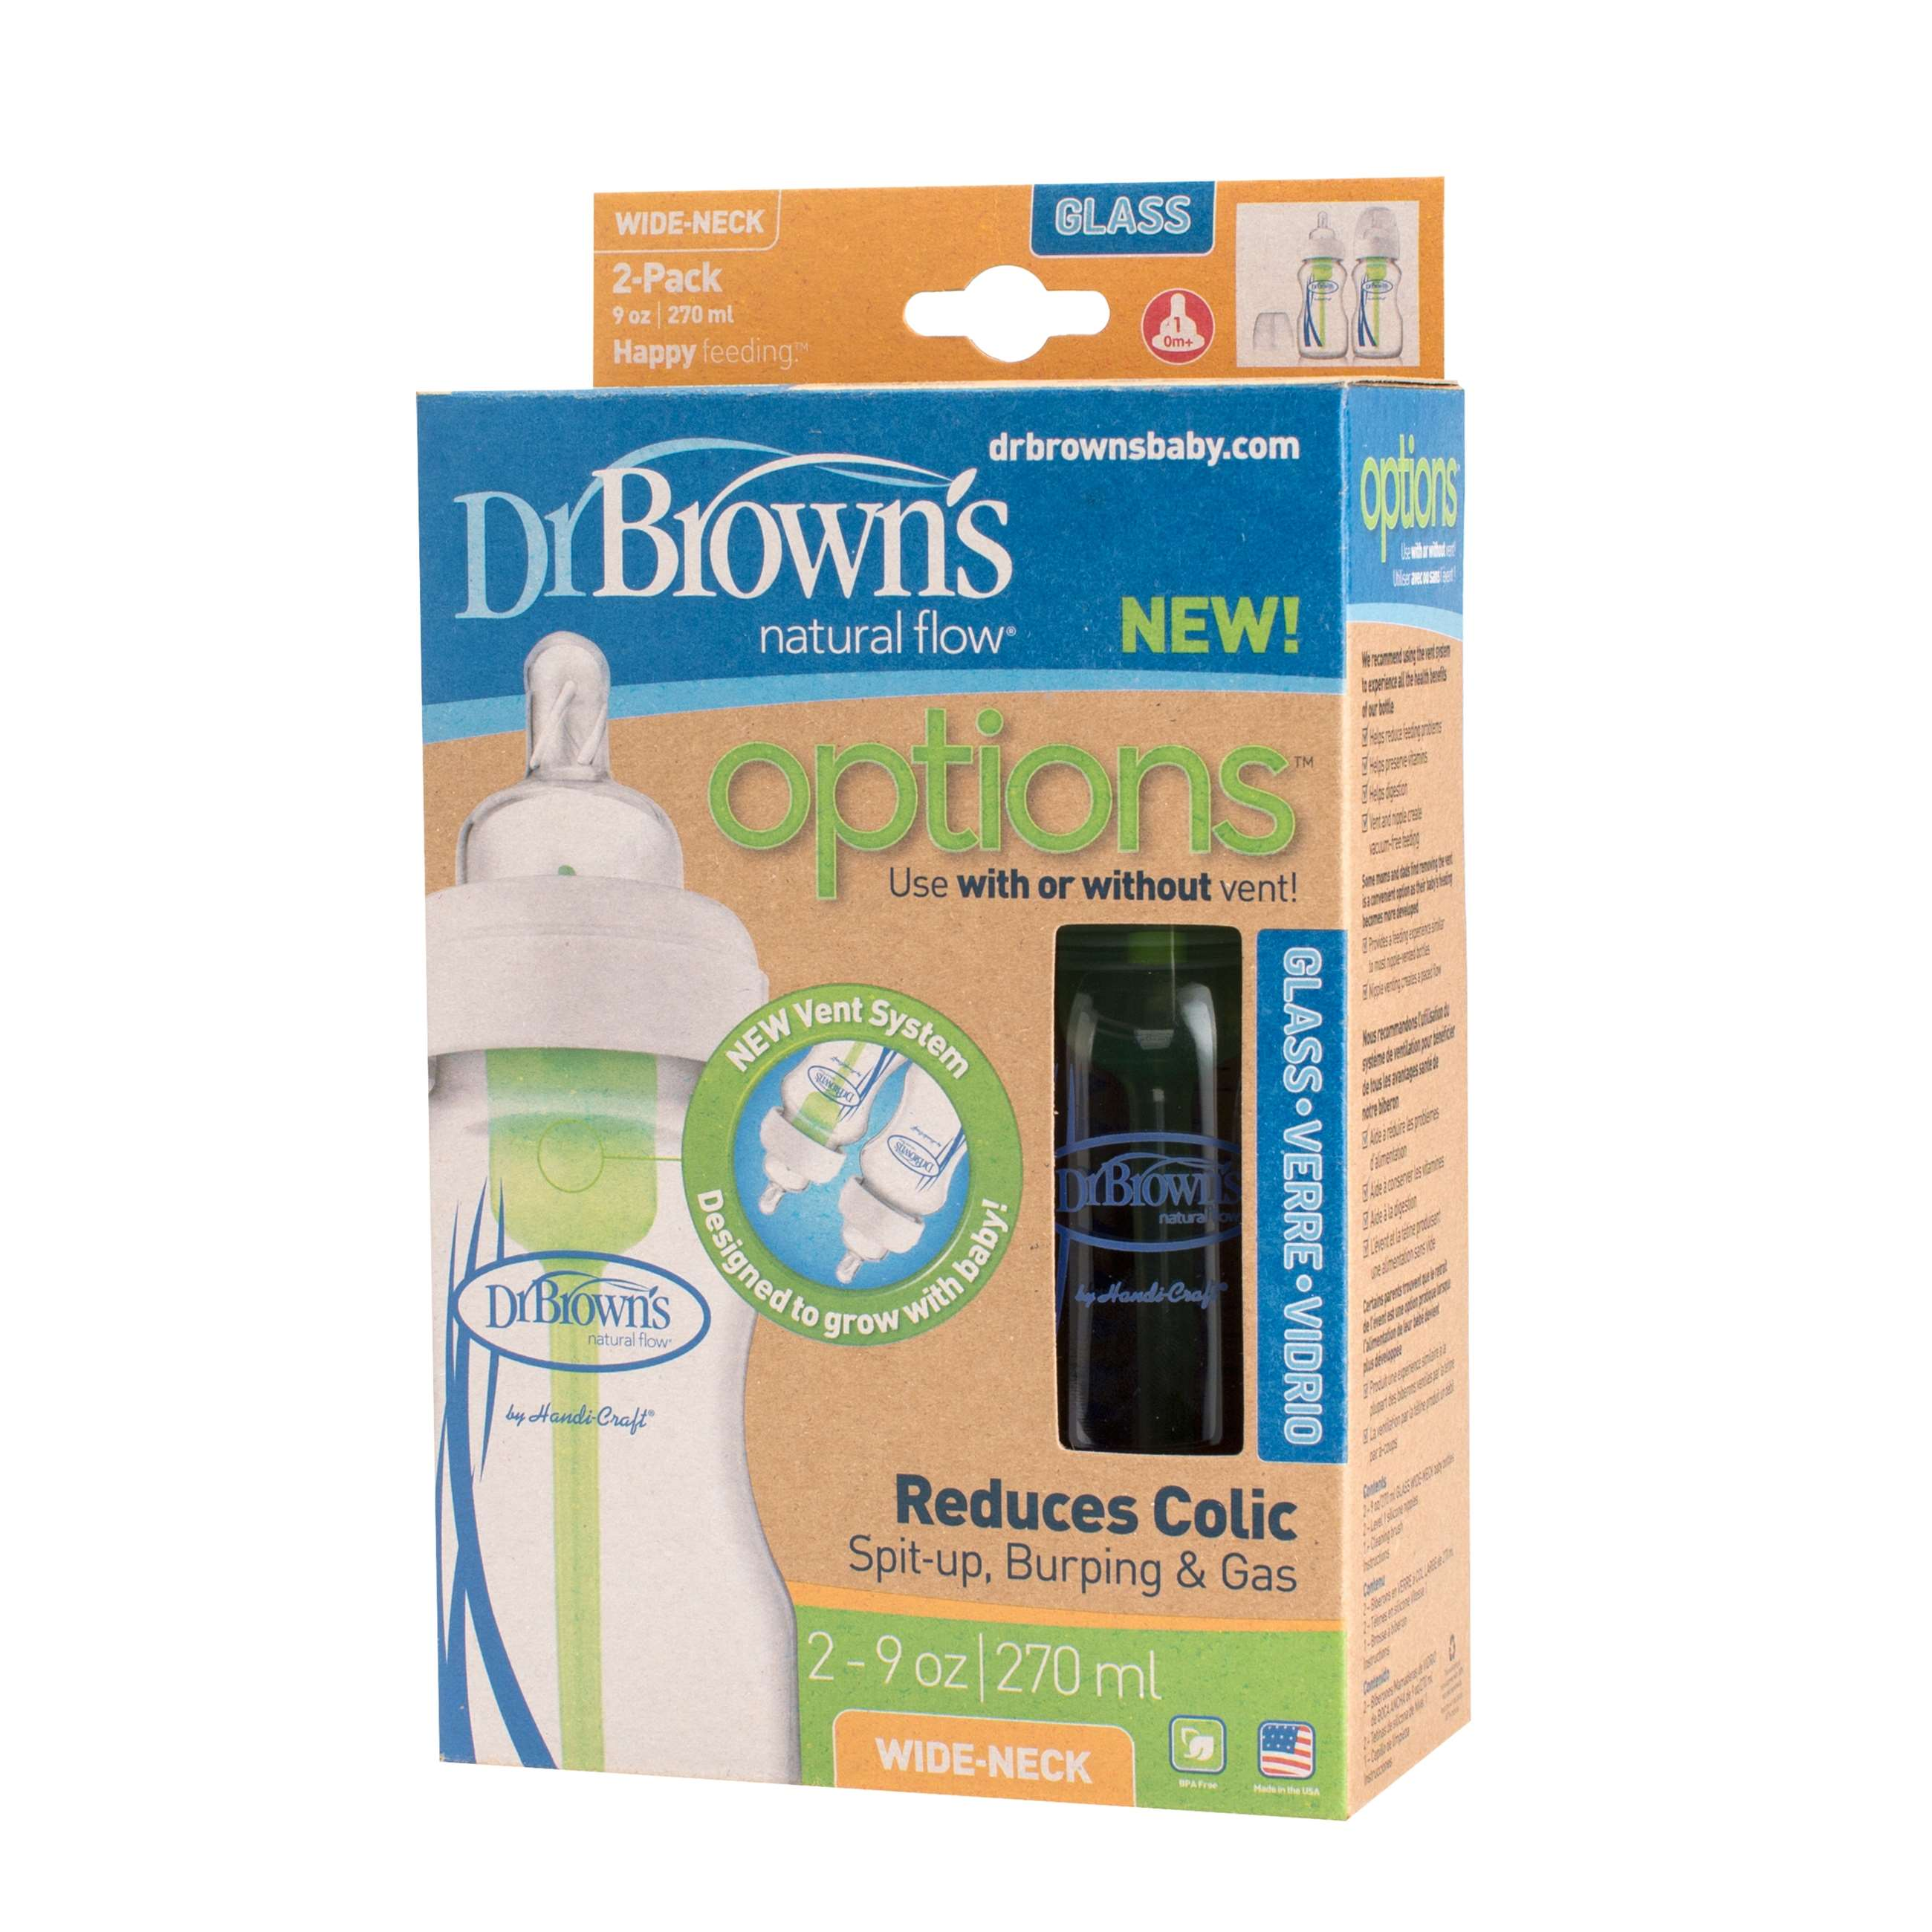 9503 - drbrown glas 270ml options bred hals 2-p wb9200_pkg